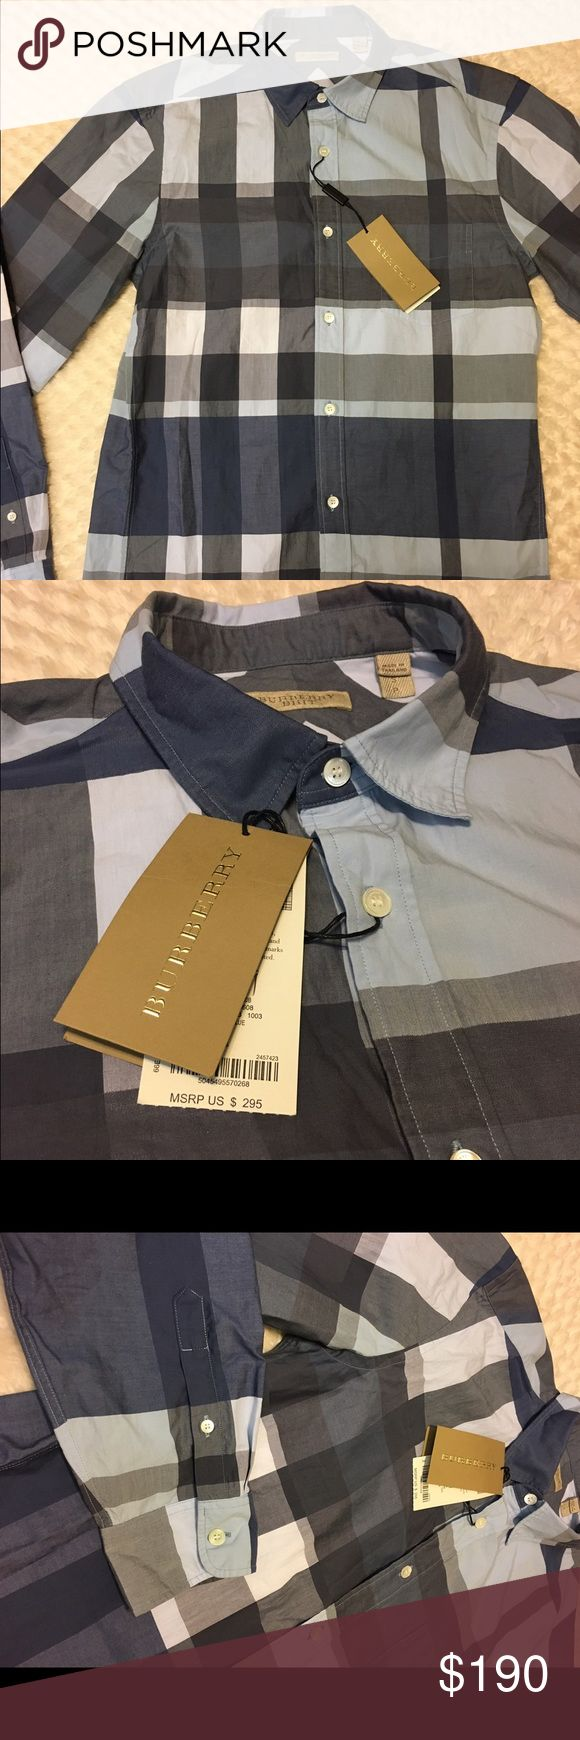 New authentic burberry shirt for men S New with tags authentic burberry shirt size small light blue color original price is 295$ long sleeves 100% cotton Burberry Shirts Casual Button Down Shirts